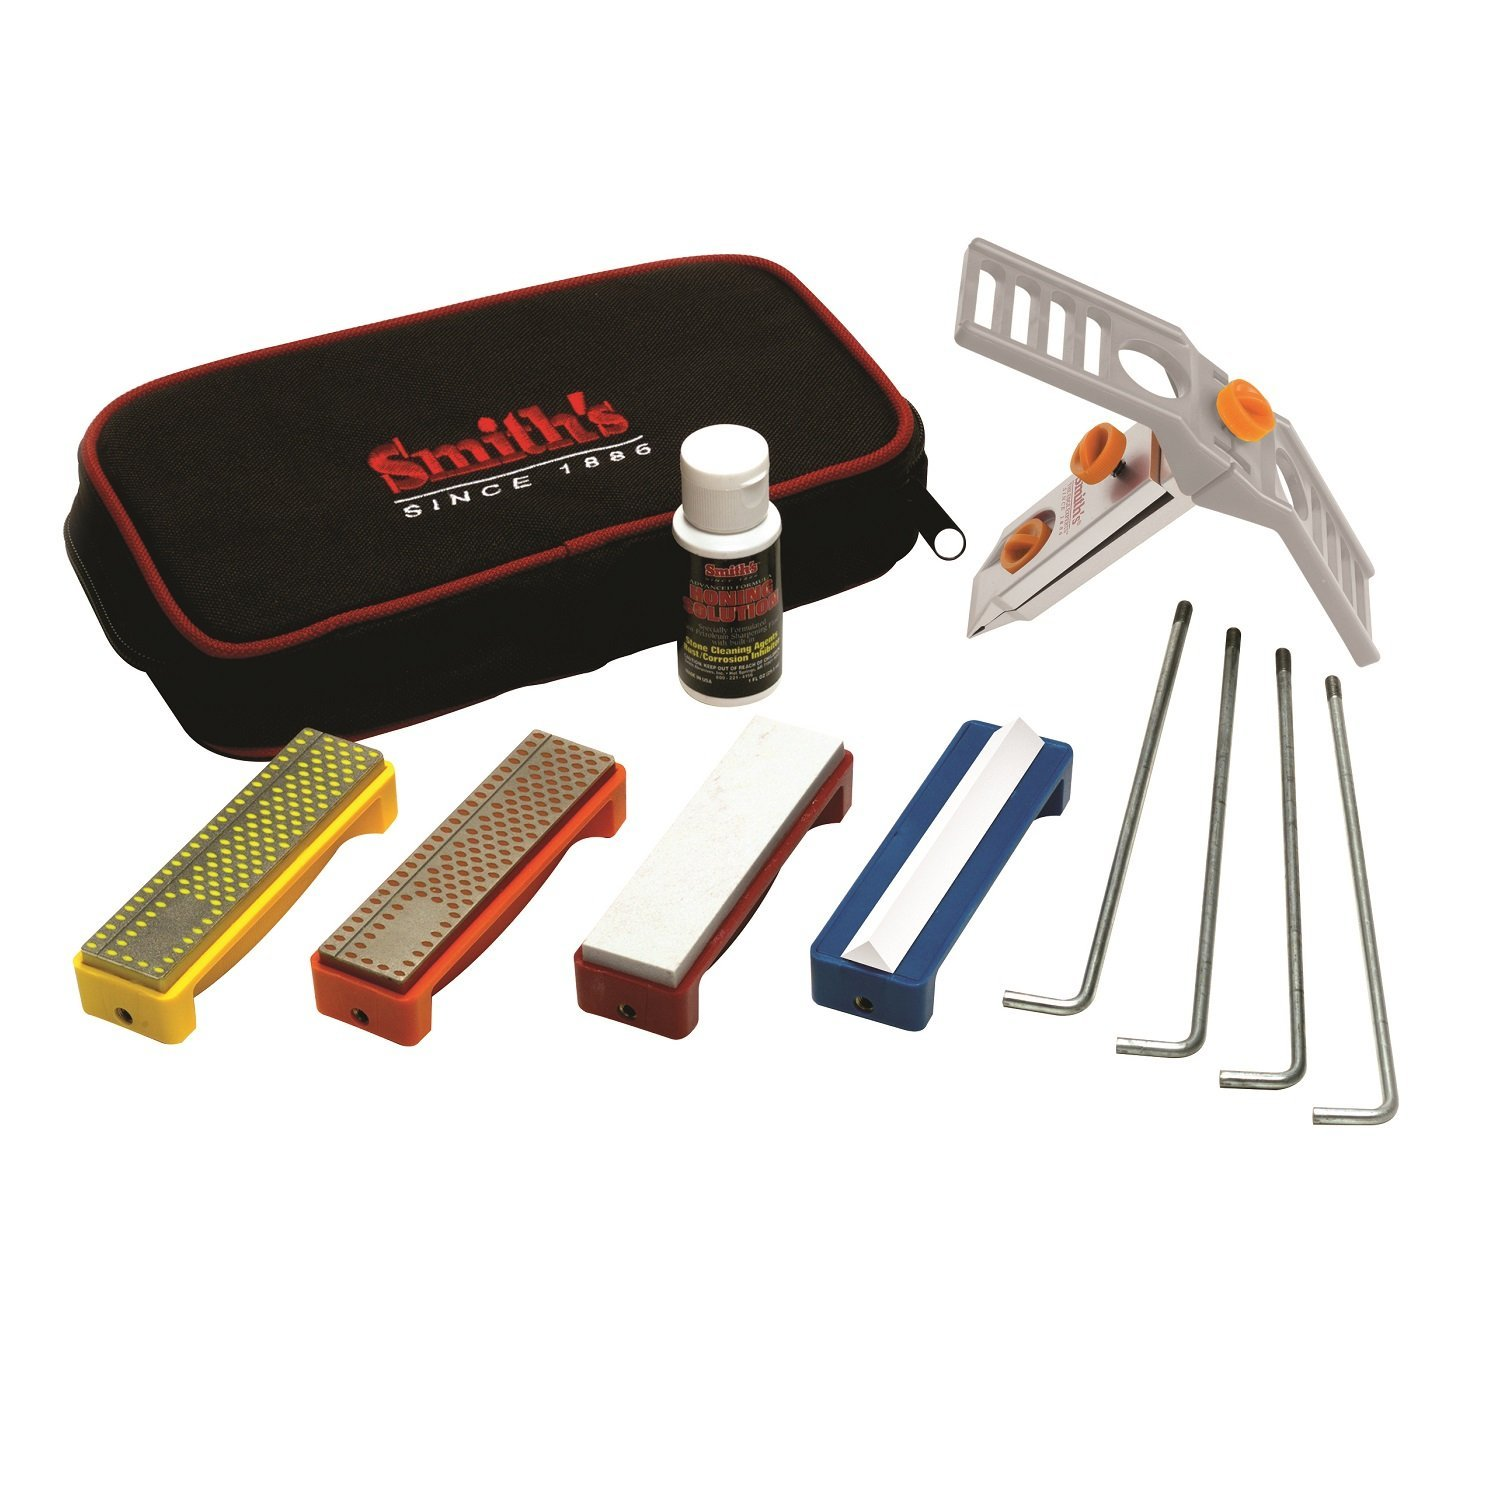 Smith's Abrasives 50591 Diamond/Arkansas Stones Precision Knife Sharpening System